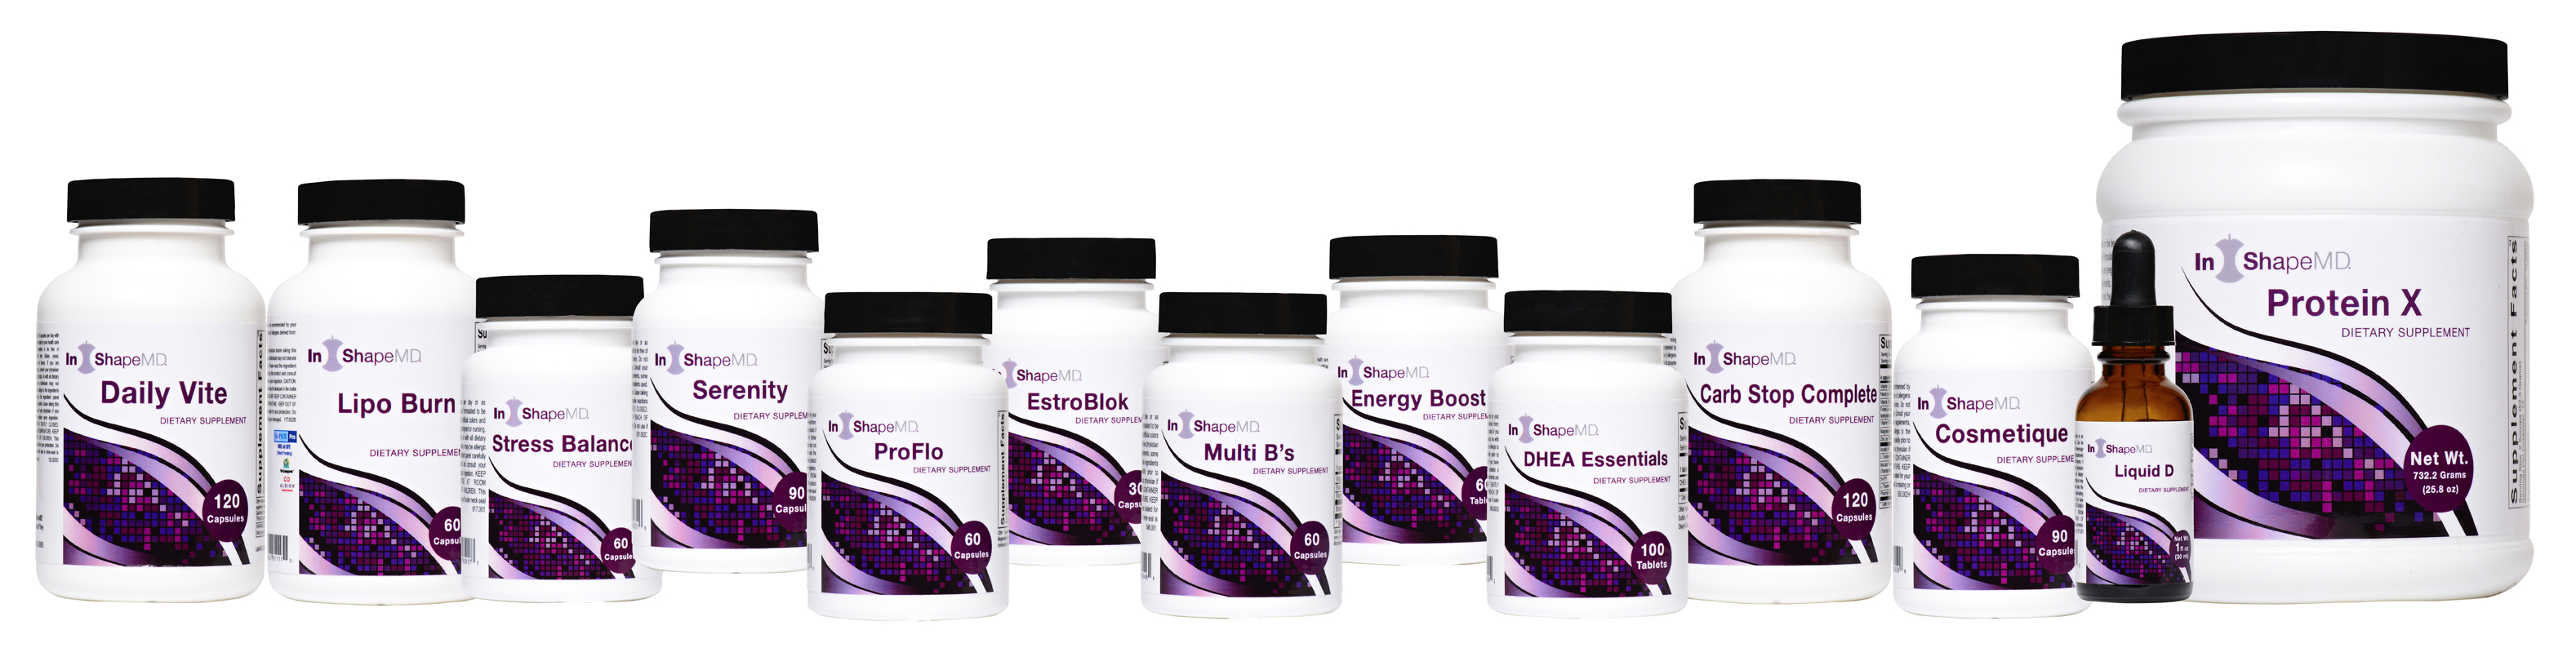 inshapemdl_supplements